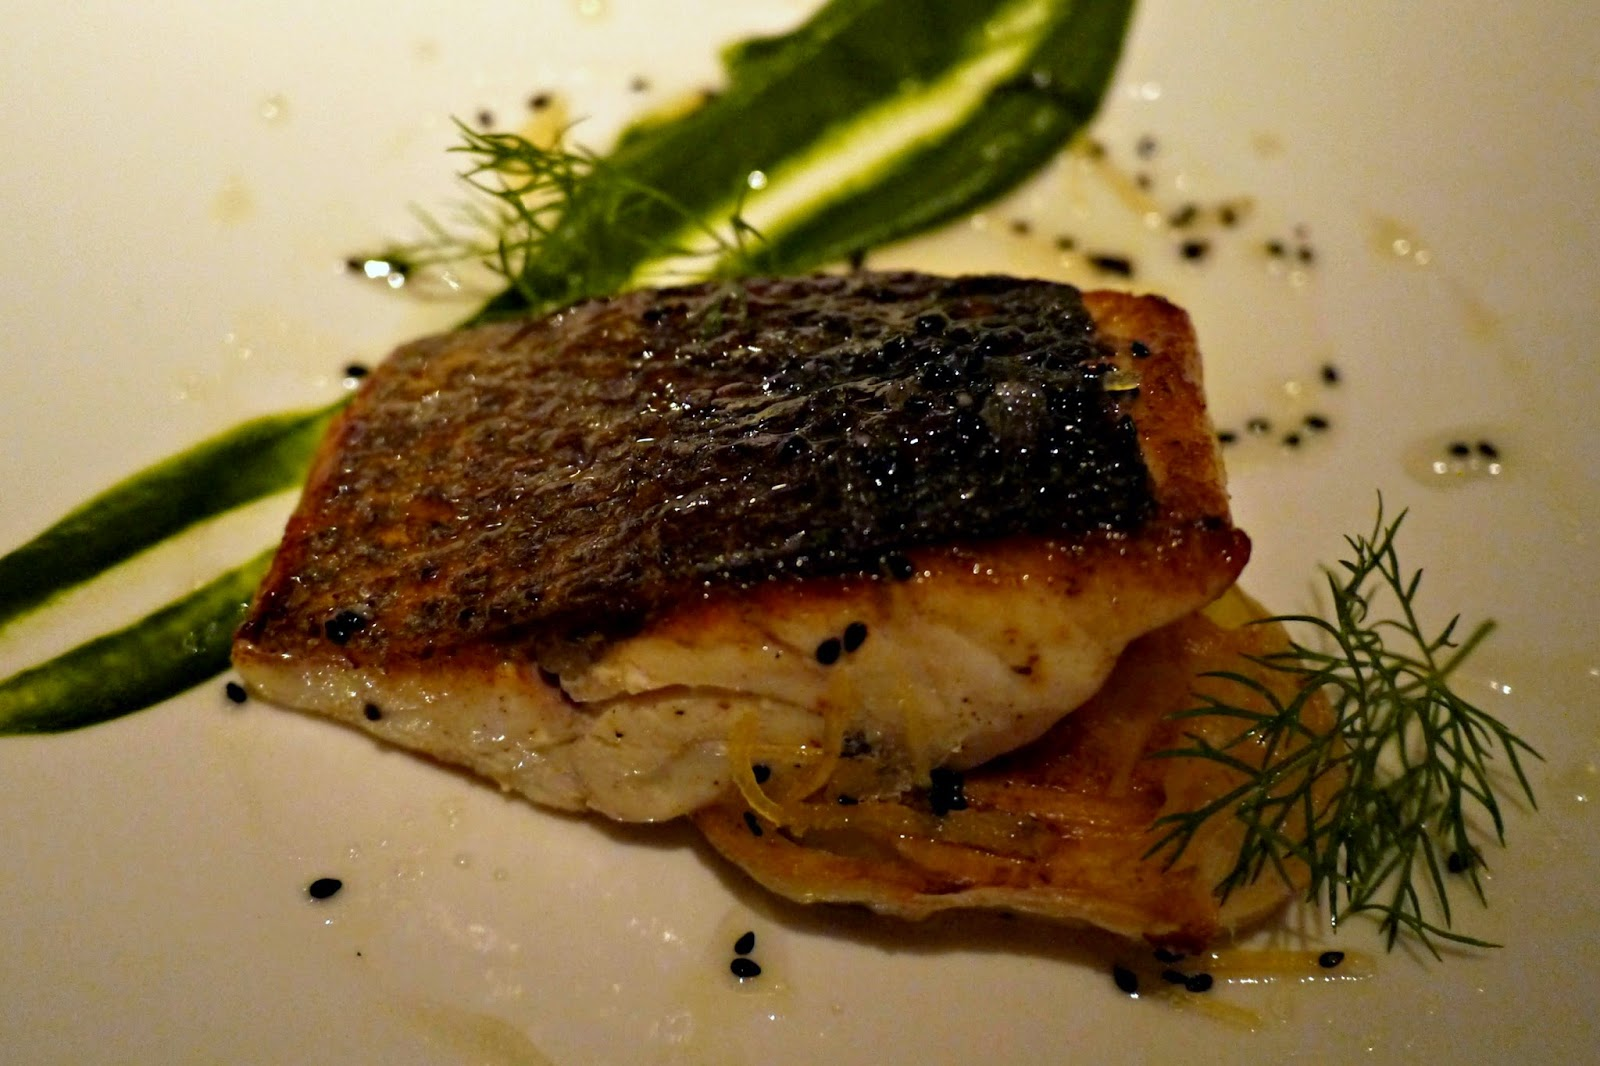 Quaglino's sea bass